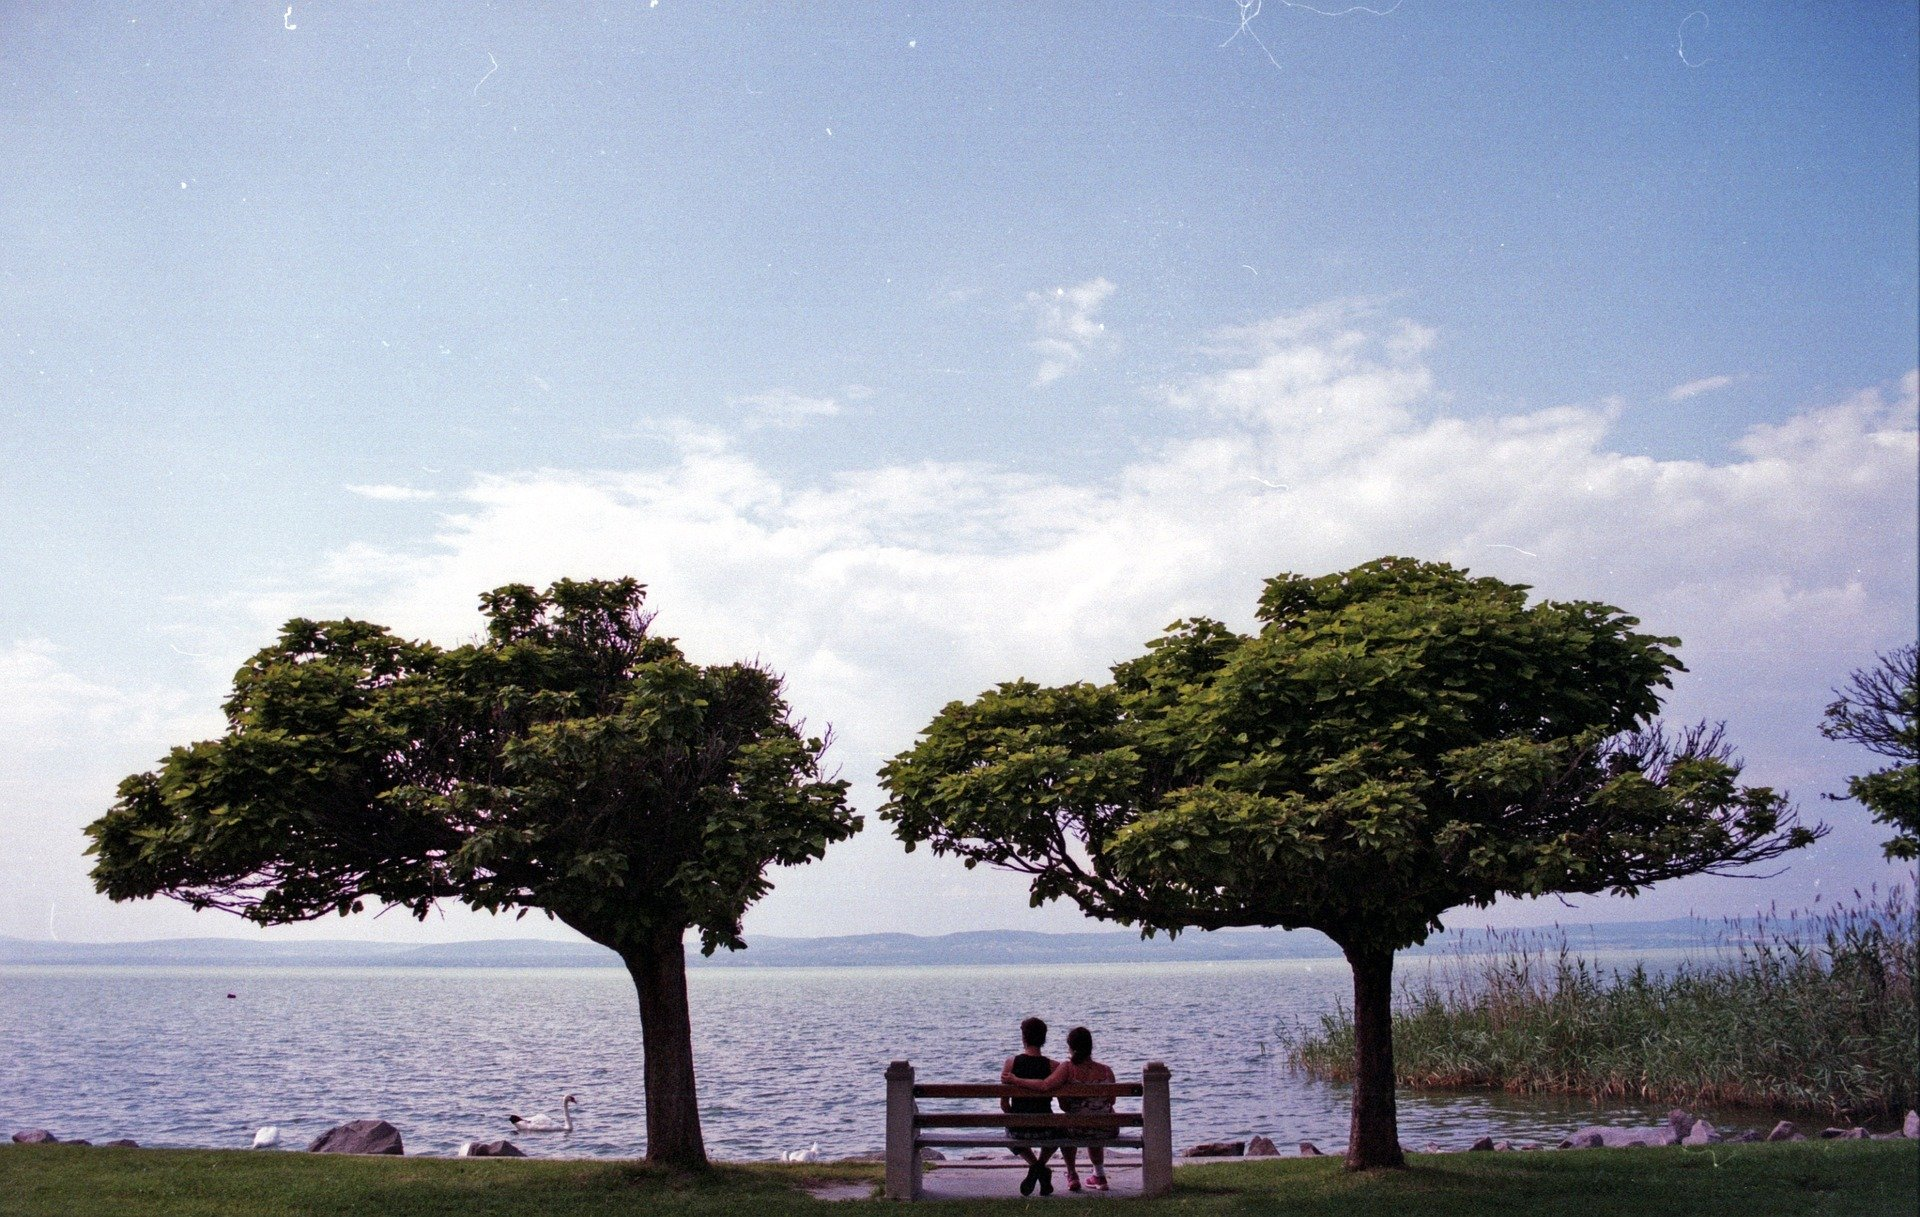 A couple sitting on a bench and looking out into the ocean   Source: Pixabay